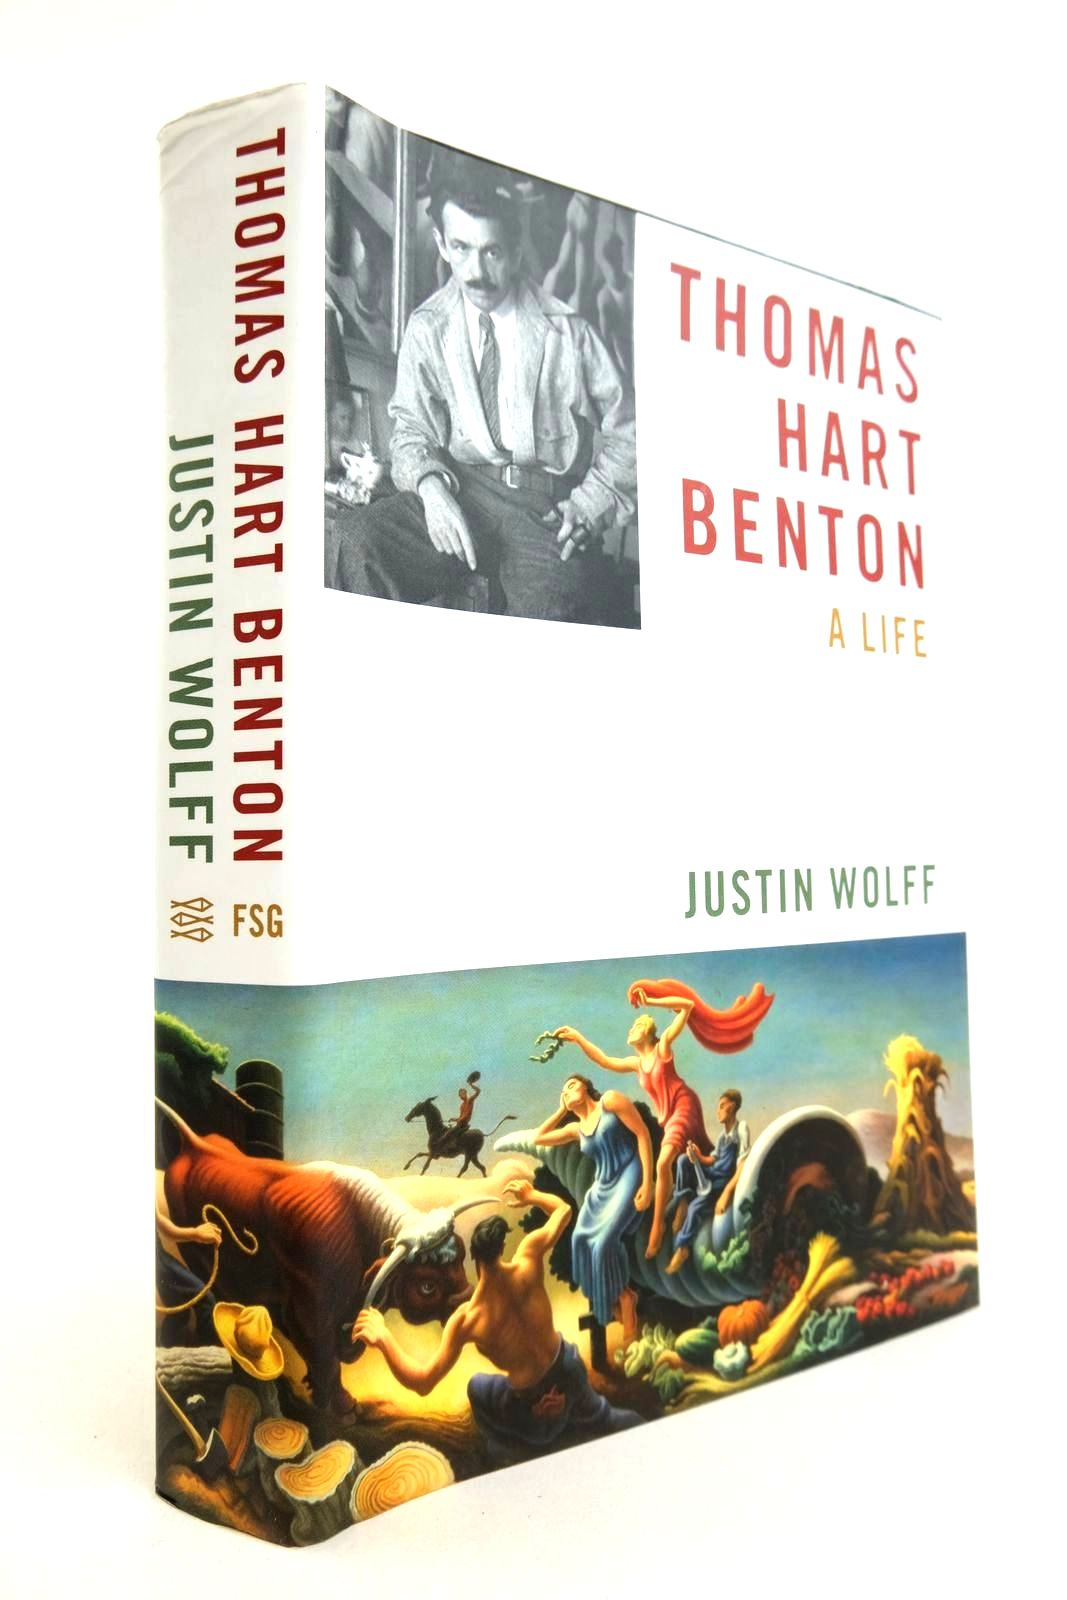 Photo of THOMAS HART BENTON A LIFE written by Wolff, Justin published by Farrar, Straus & Giroux (STOCK CODE: 2133332)  for sale by Stella & Rose's Books